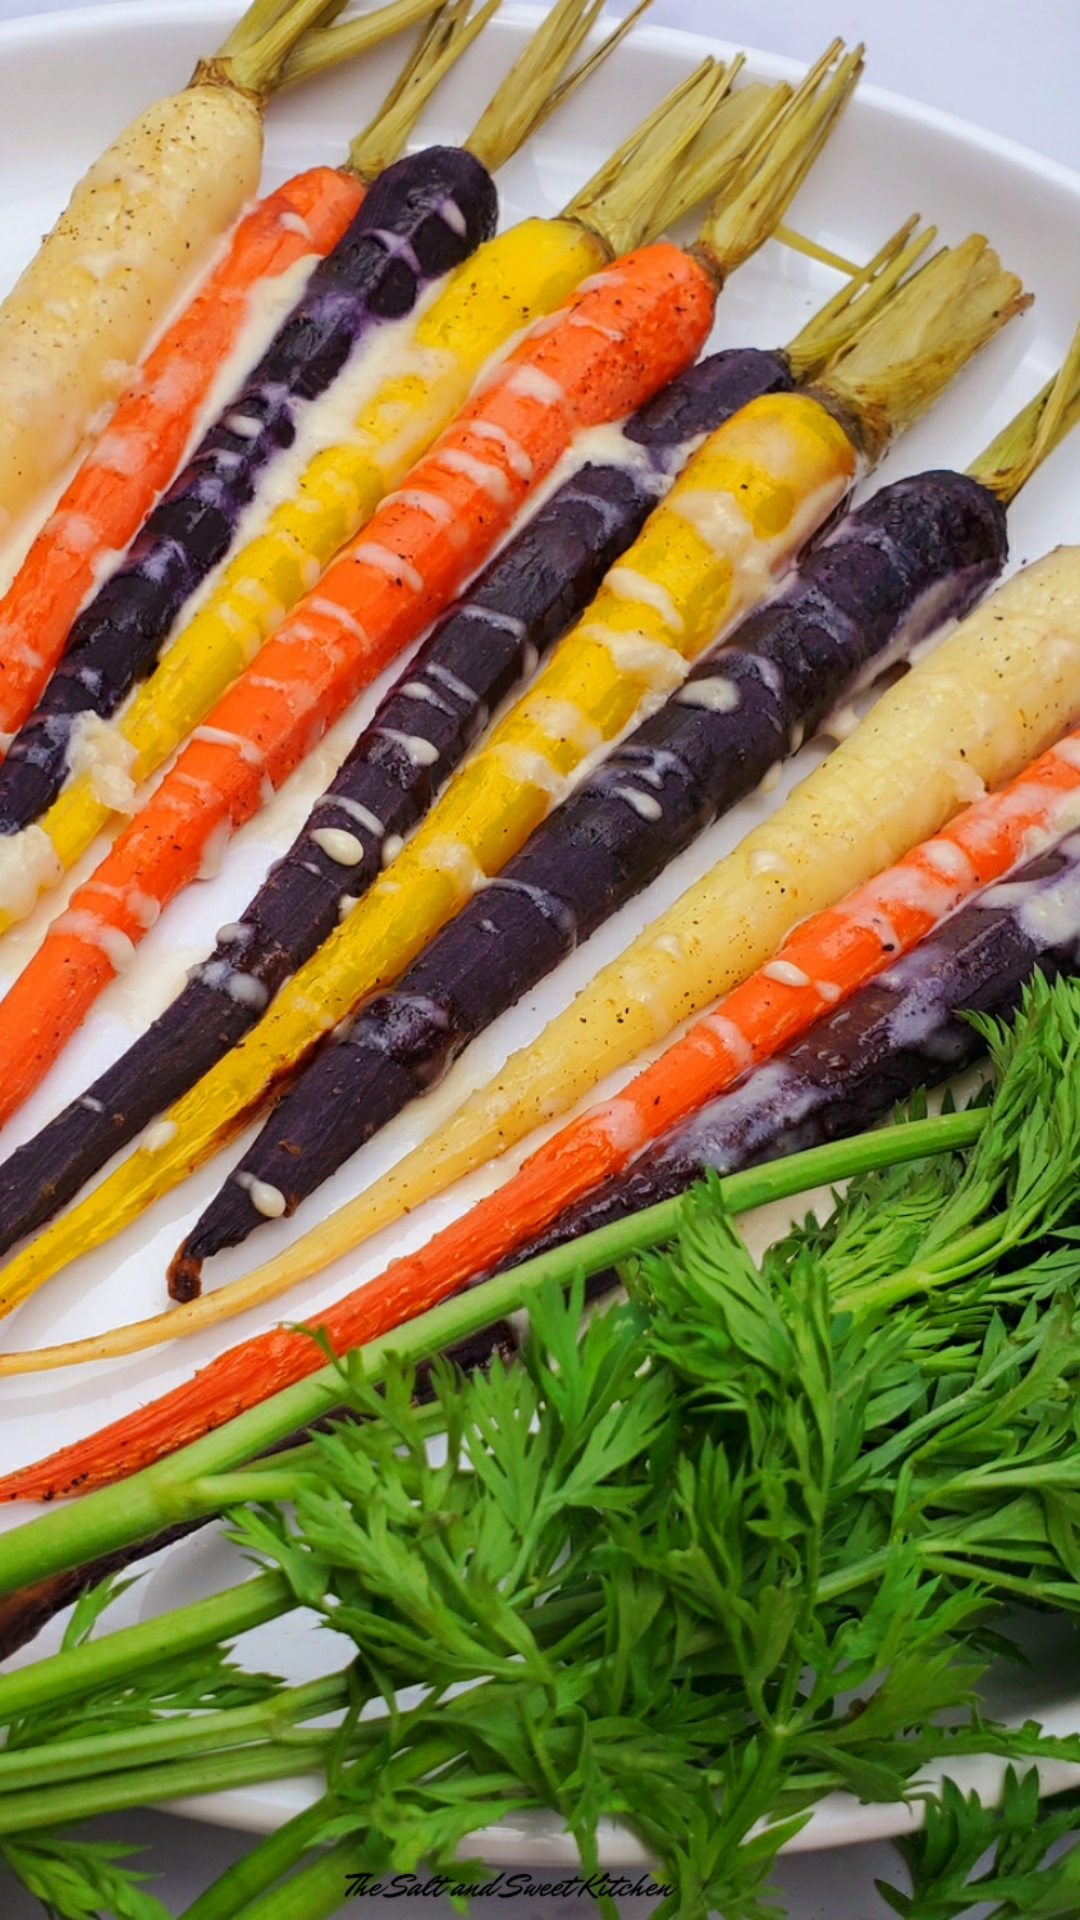 Rainbow Carrots with Tahini Sauce